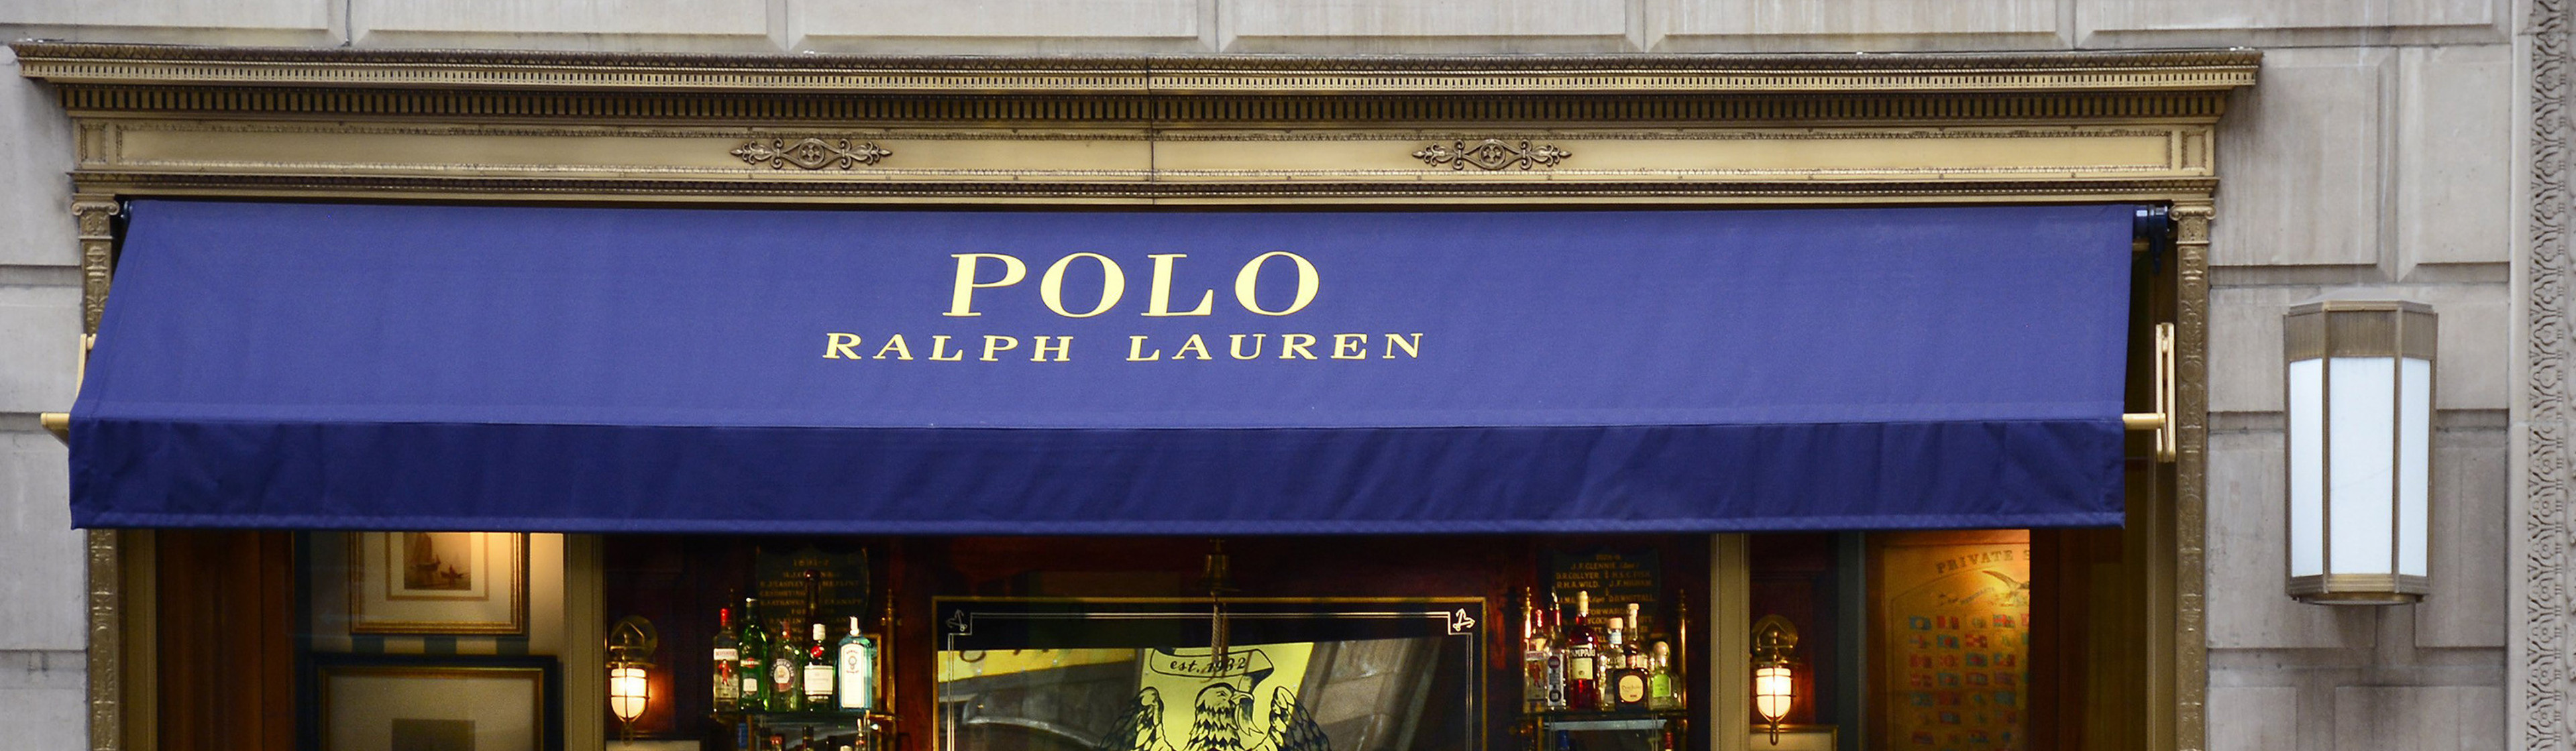 Ralph Lauren to Close Flagship Fifth Avenue Polo Store